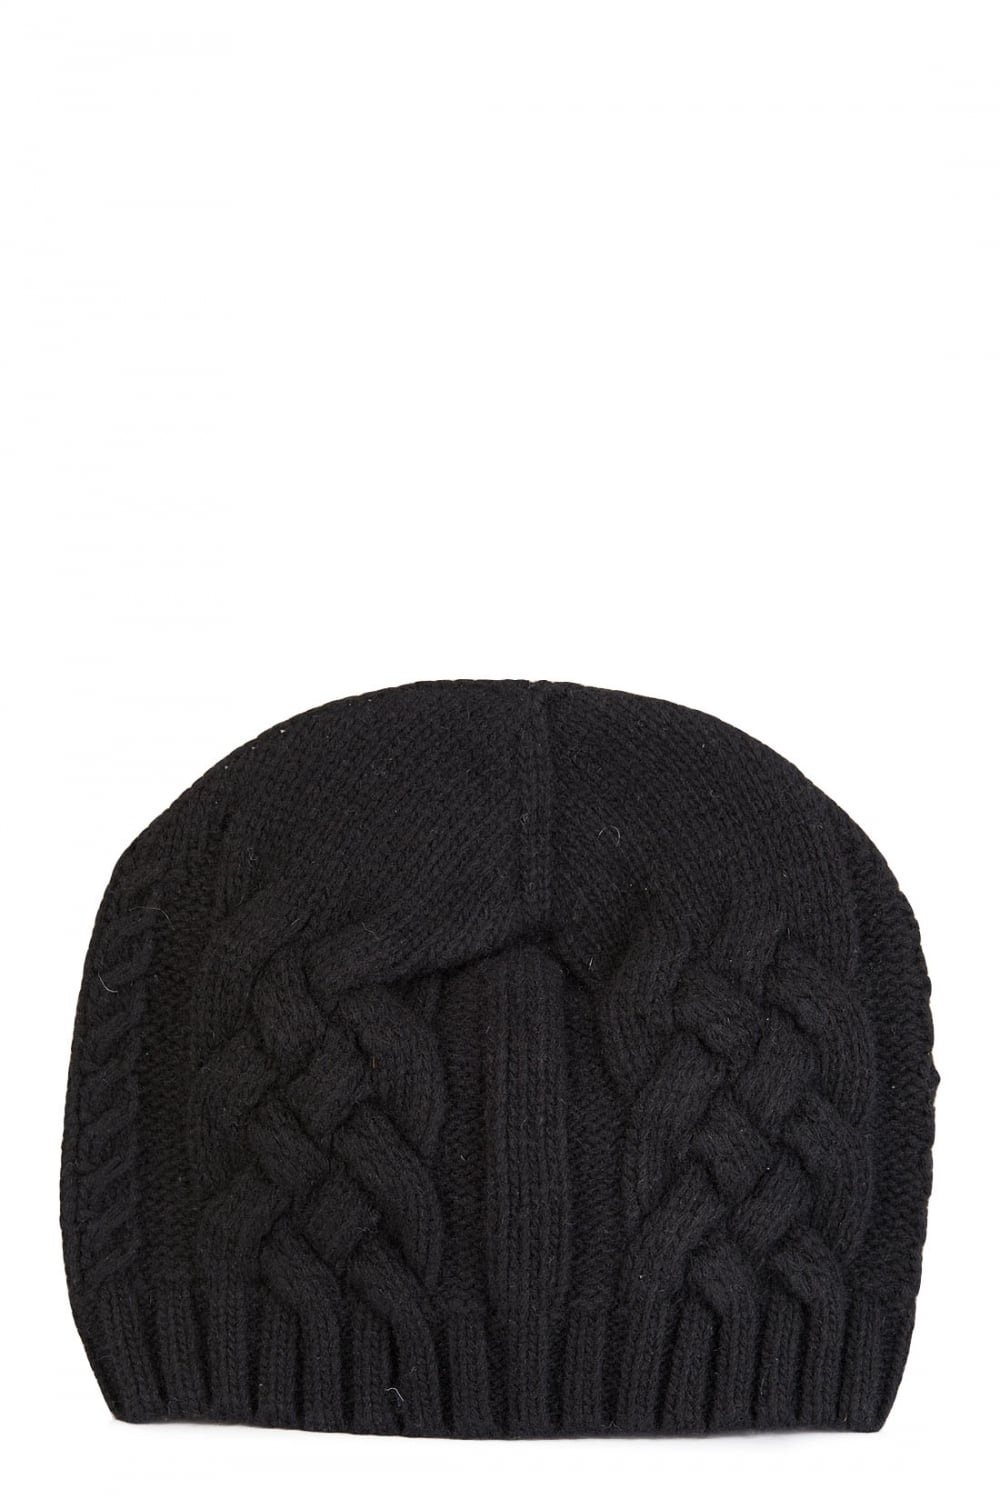 ARMANI Armani Jeans Tab Logo Beanie Hat Black - Clothing from Circle ... 5d587e447ad